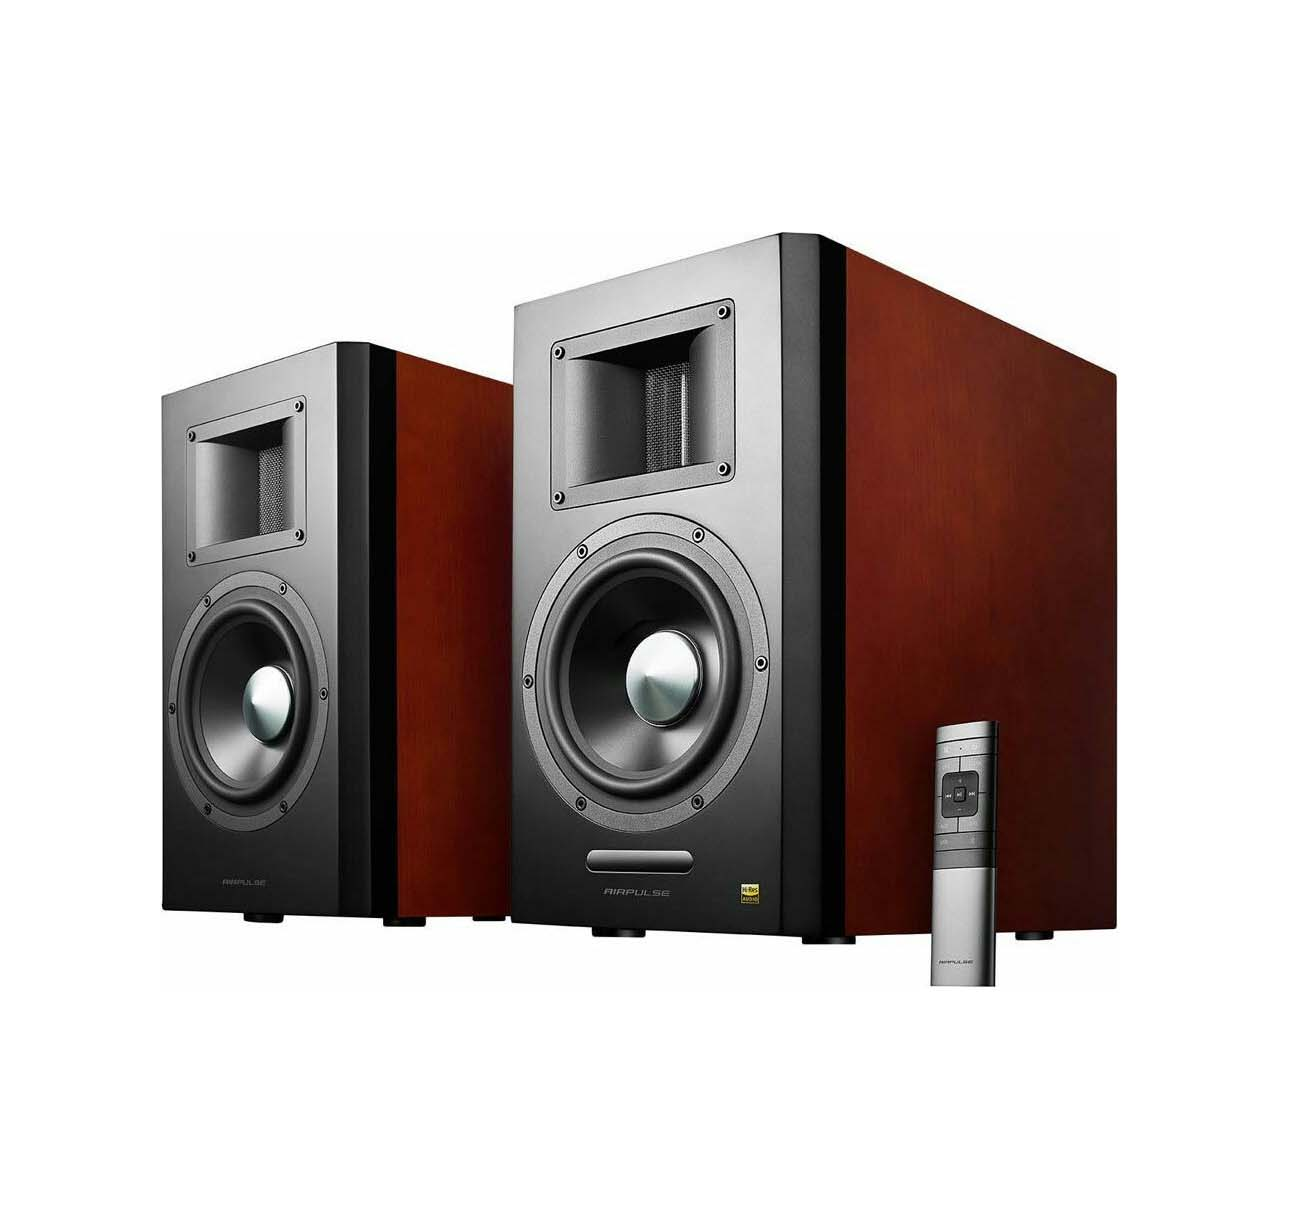 Airpulse Ηχεία A300 160W Brown